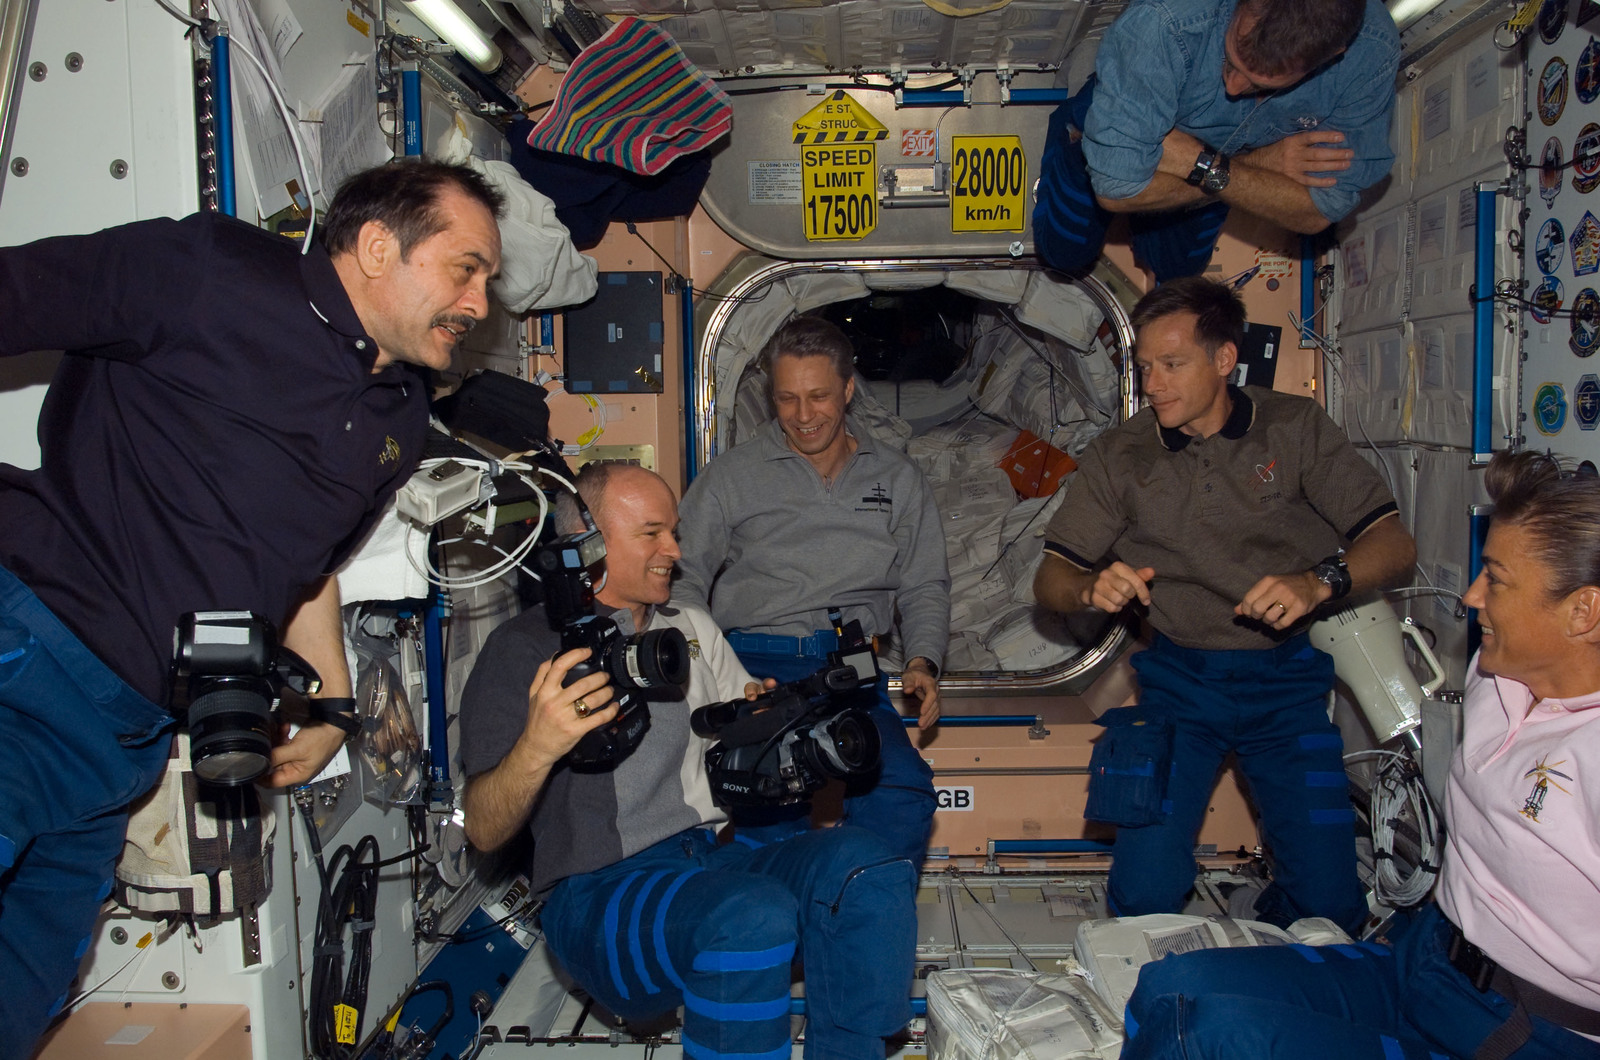 S115E06523 - STS-115 - STS-115 and Expedition 13 crewmembers in the Node 1 during Joint Operations